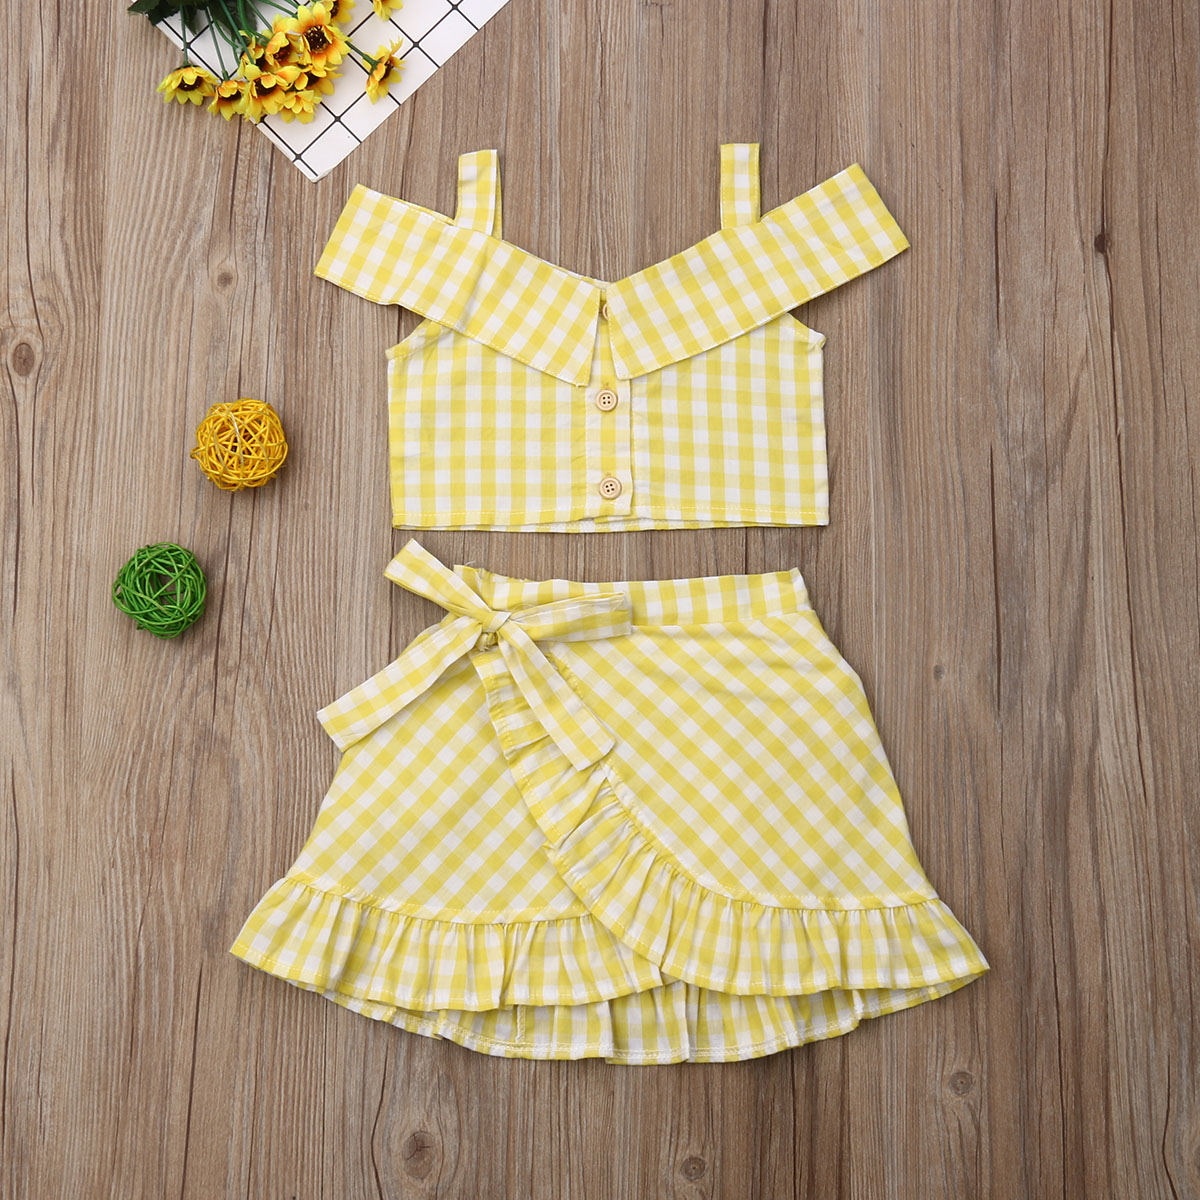 Emmababy Summer Toddler Baby Girl Clothes Plaid Strap Crop Tops Ruffle Mini Skirt 2Pcs Outfits Clothes Summer